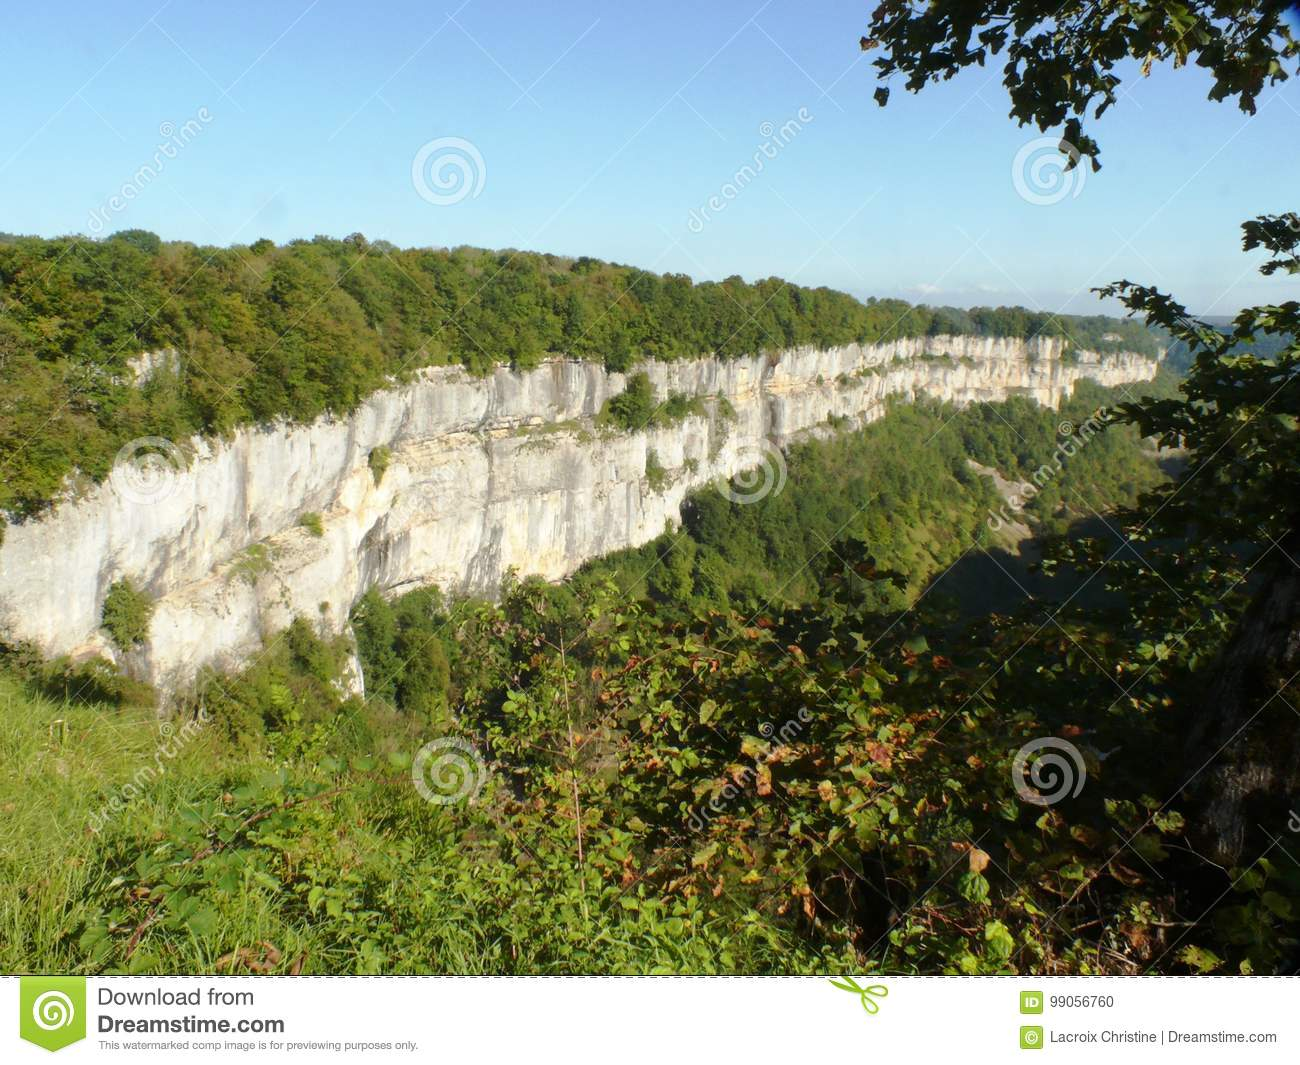 Limestone cliffs of the Baume les Messieurs circus in France.